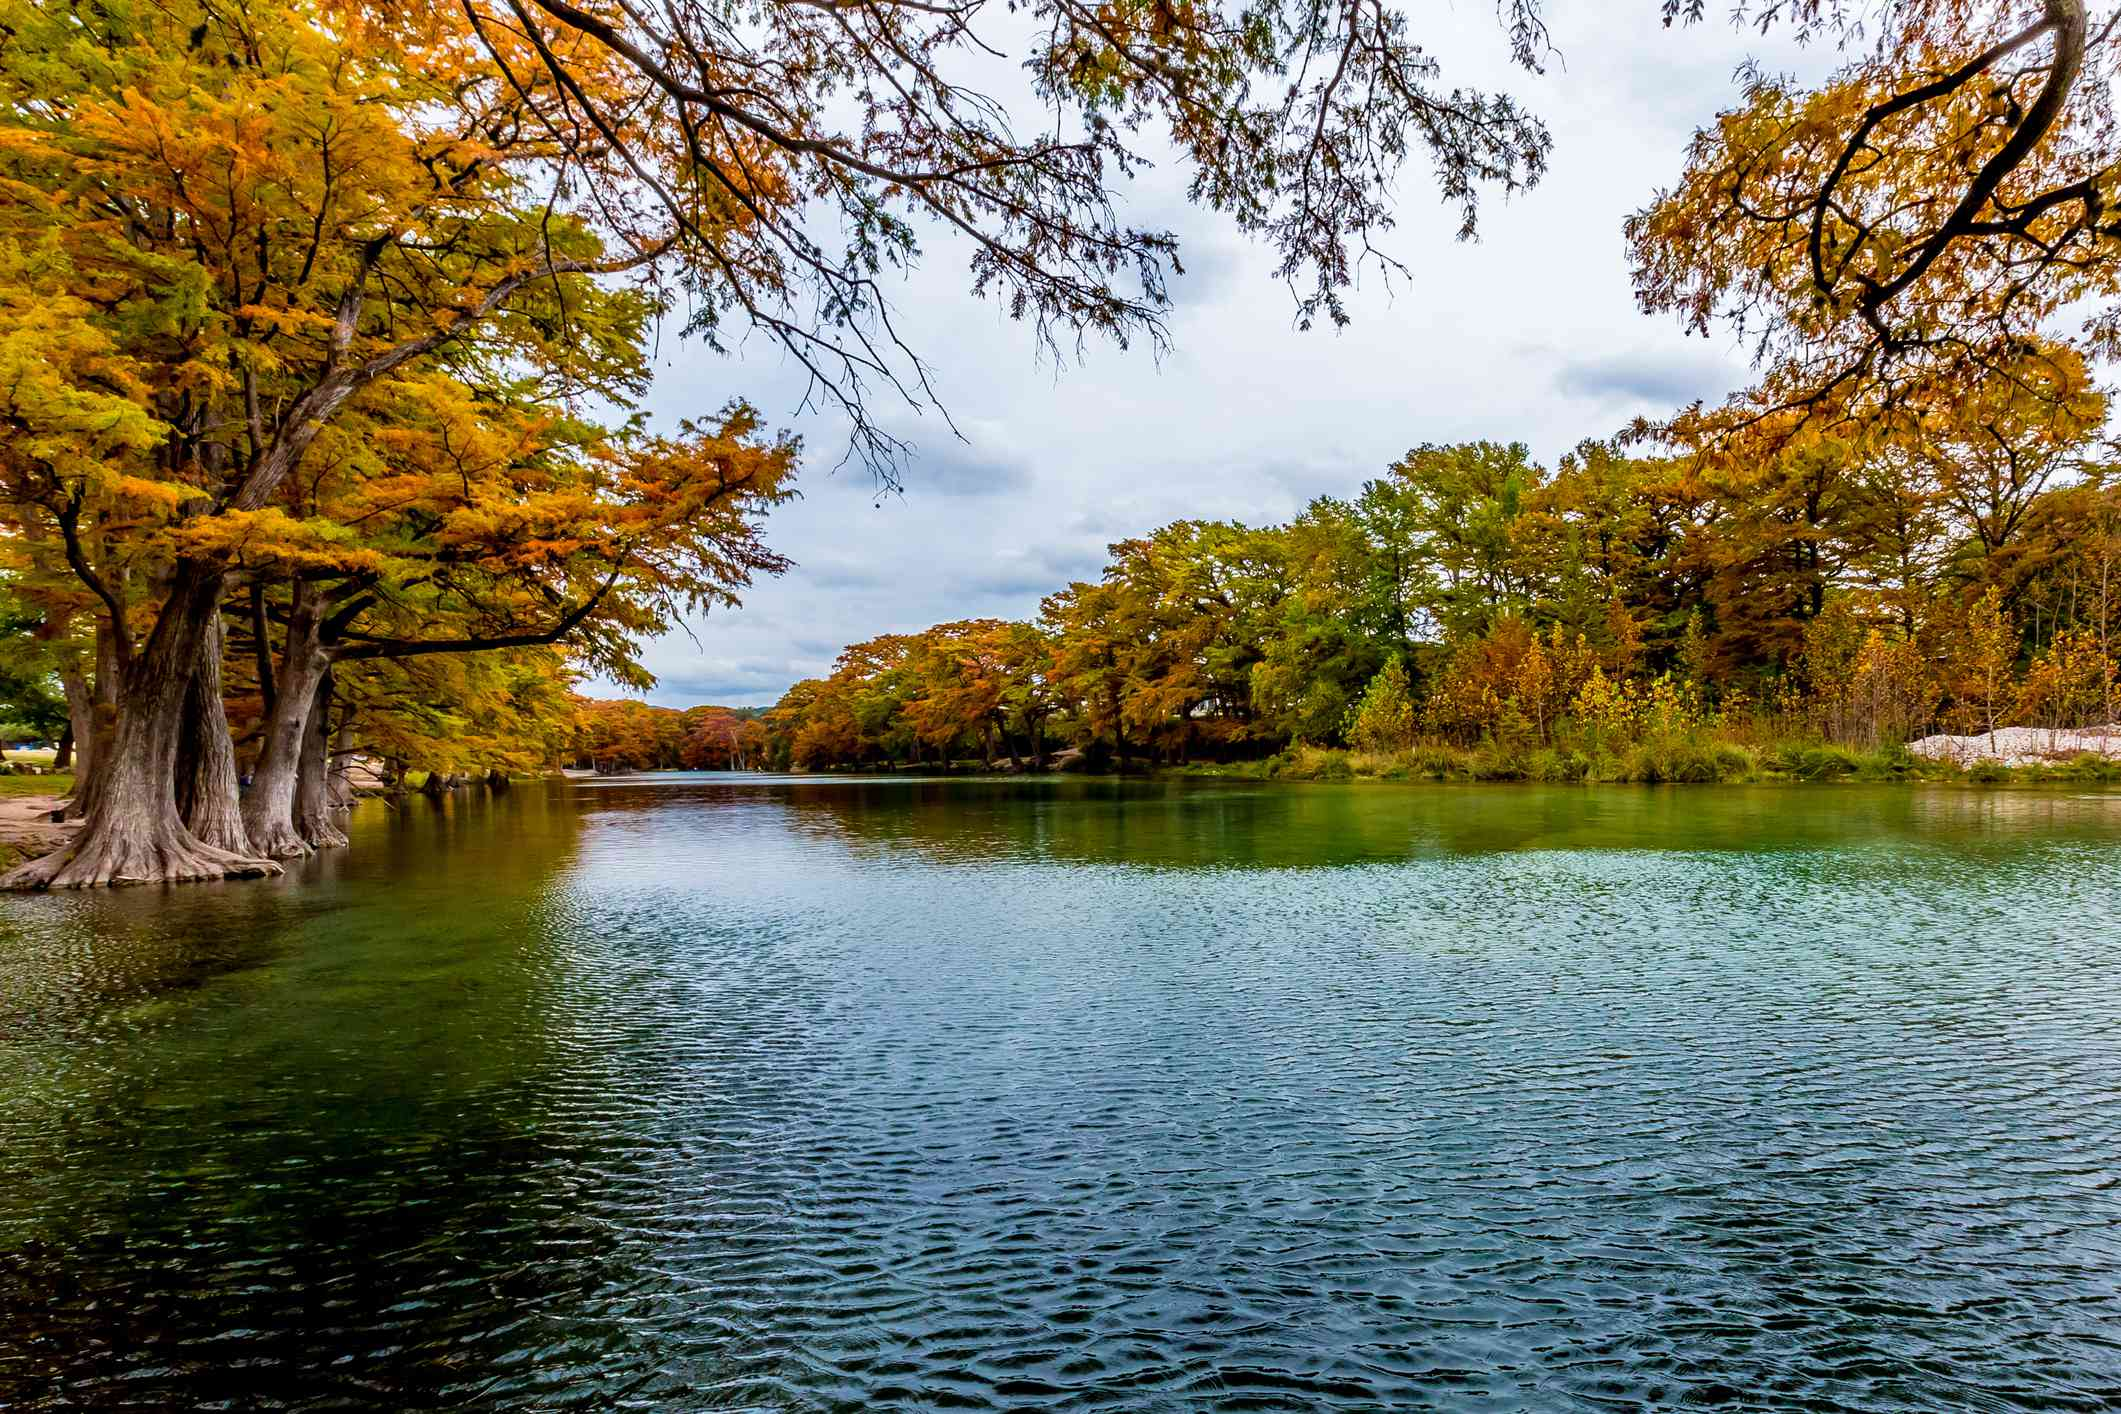 Fall foliage surrounding the Frio River in Texas